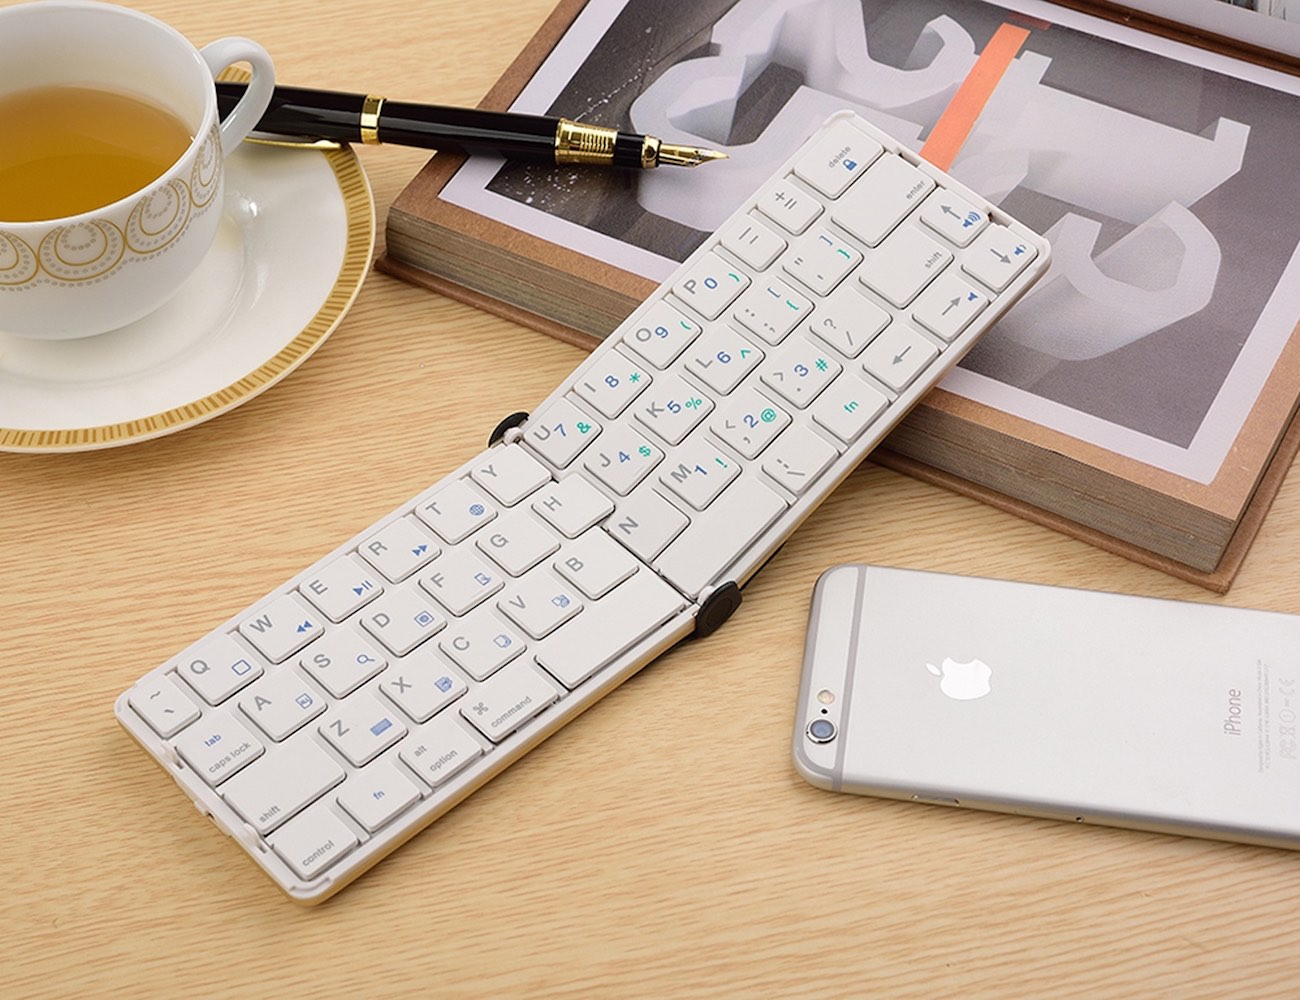 Universal Foldable Bluetooth Keyboard By Ilepo 187 Gadget Flow